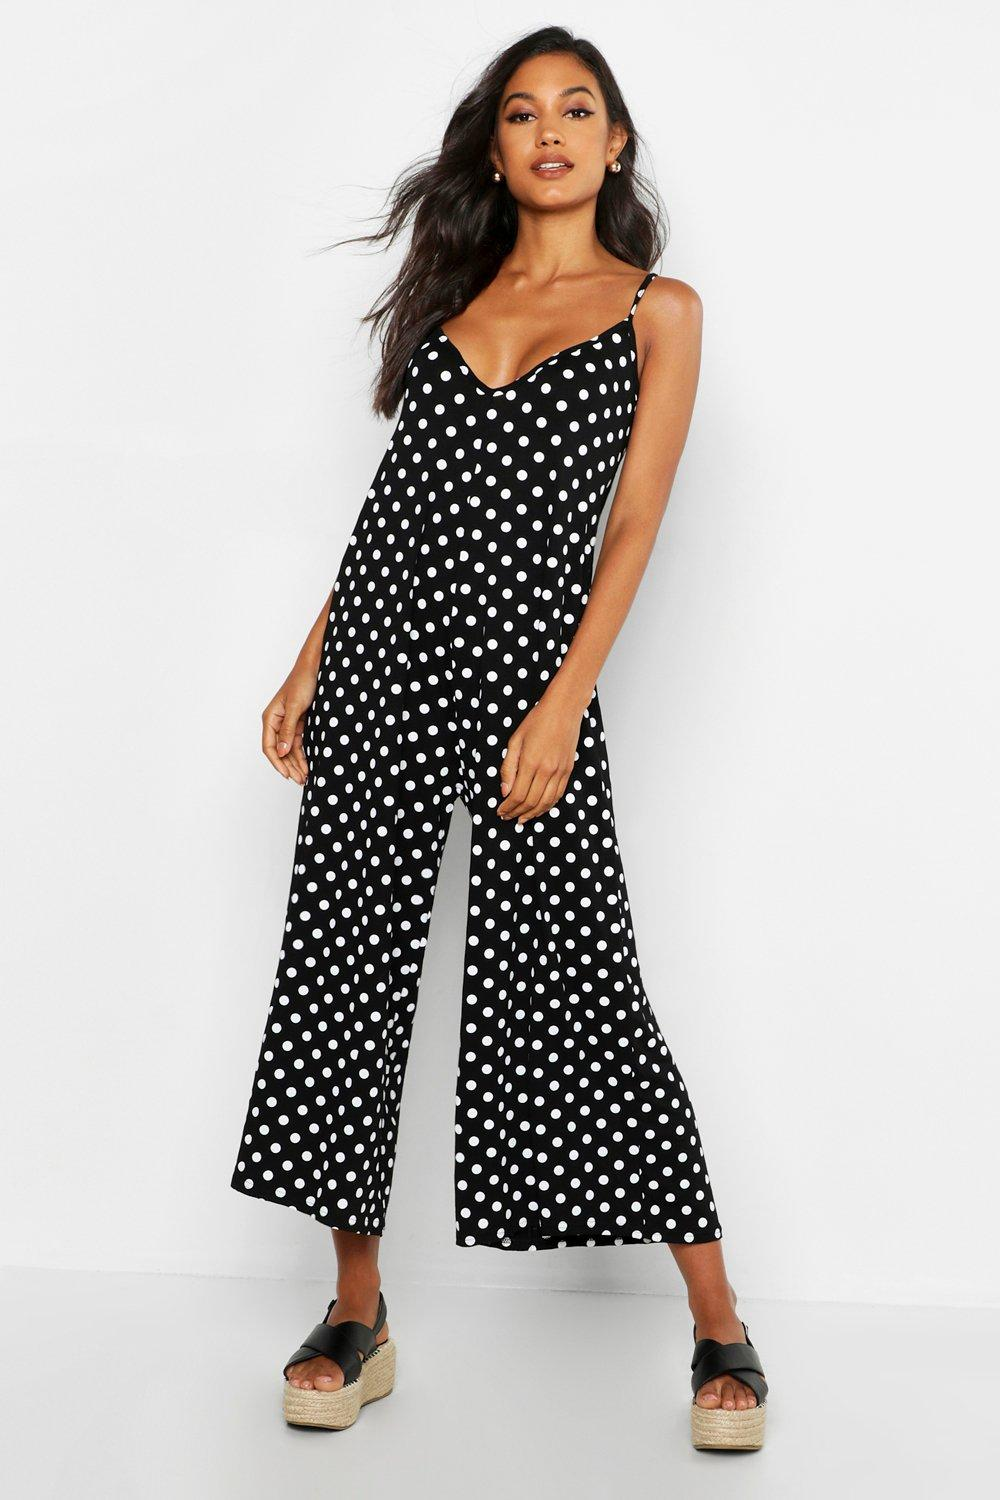 b8e220a5037 Polka Dot Swing Jumpsuit. Hover to zoom